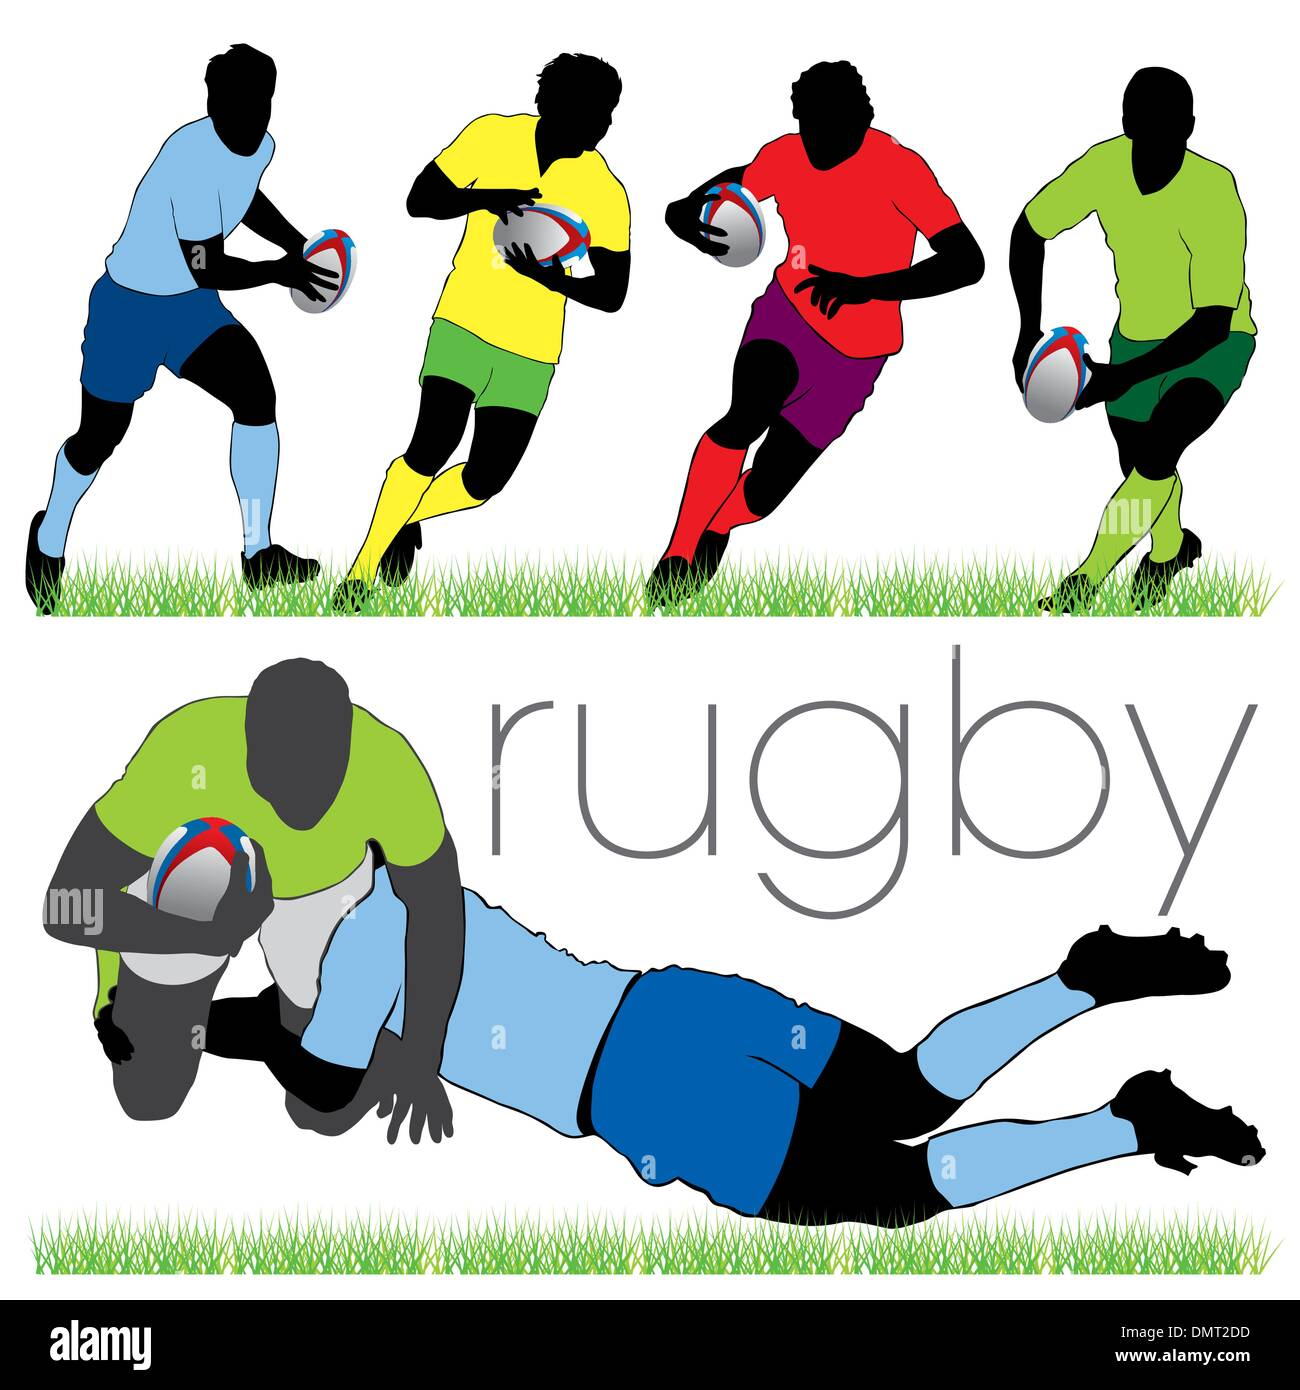 6 Rugby Players Silhouettes Set - Stock Vector